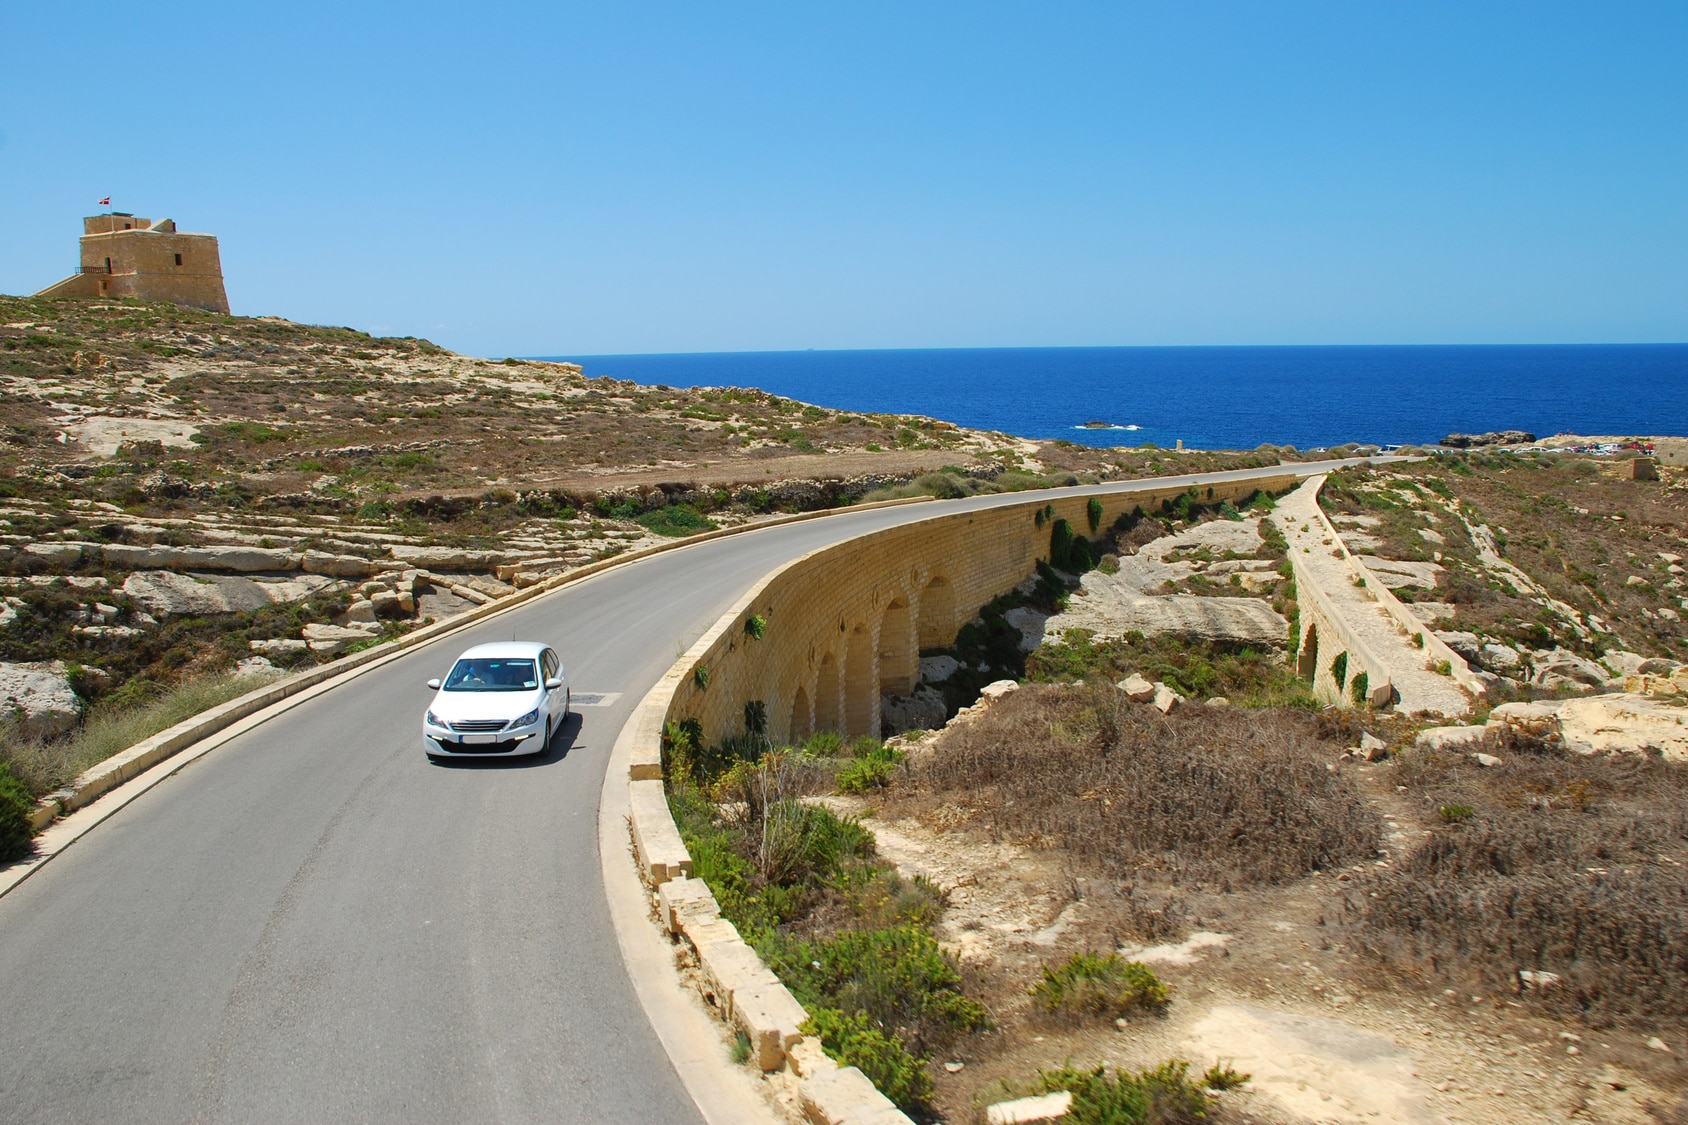 Want to Drive?  A Guide for Buying and Owning a car in Malta